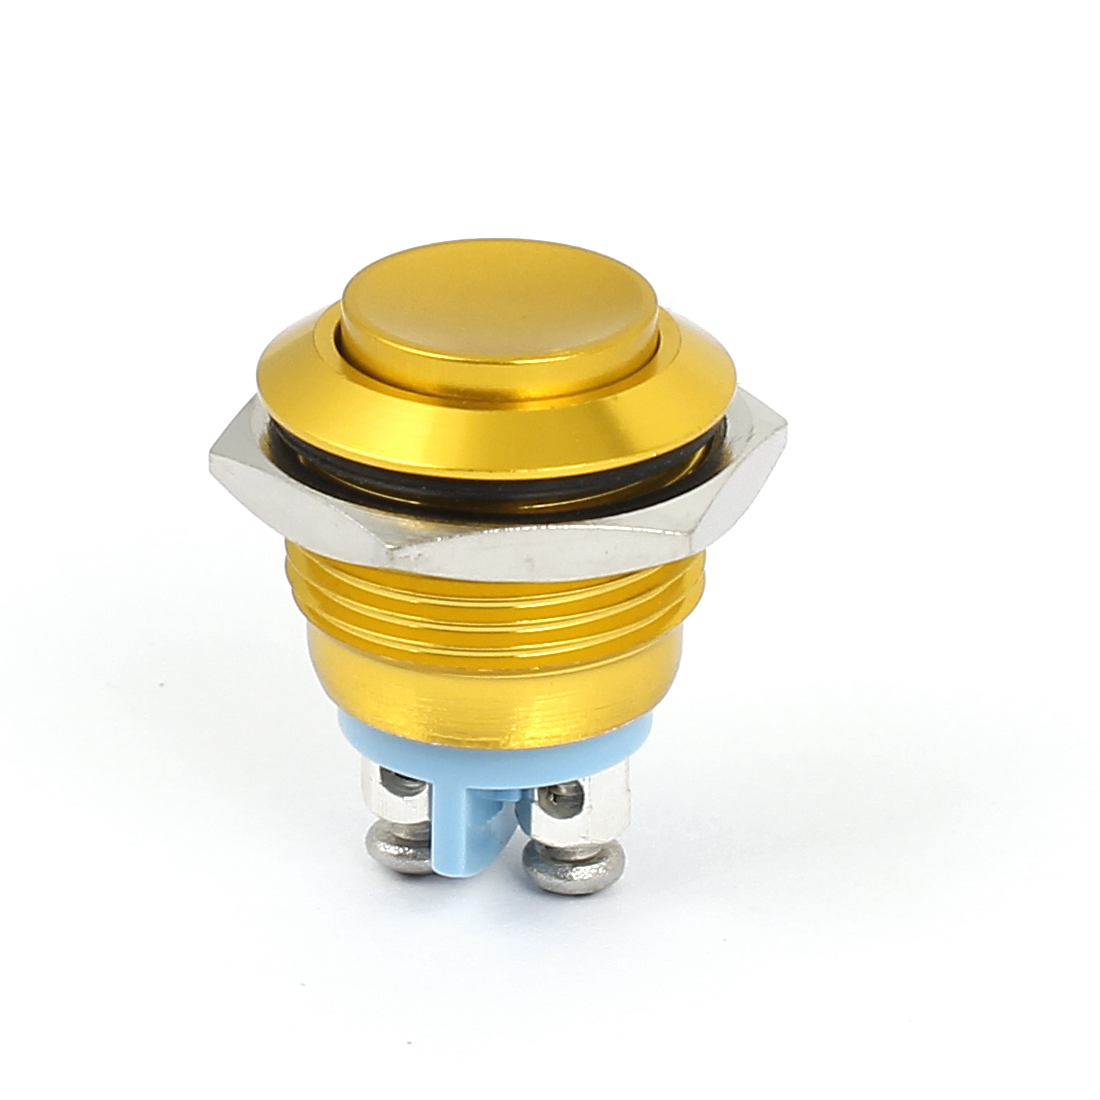 M16 Metal Pushbutton Switch Panel Mount Momentary Type Yellow Raised Head